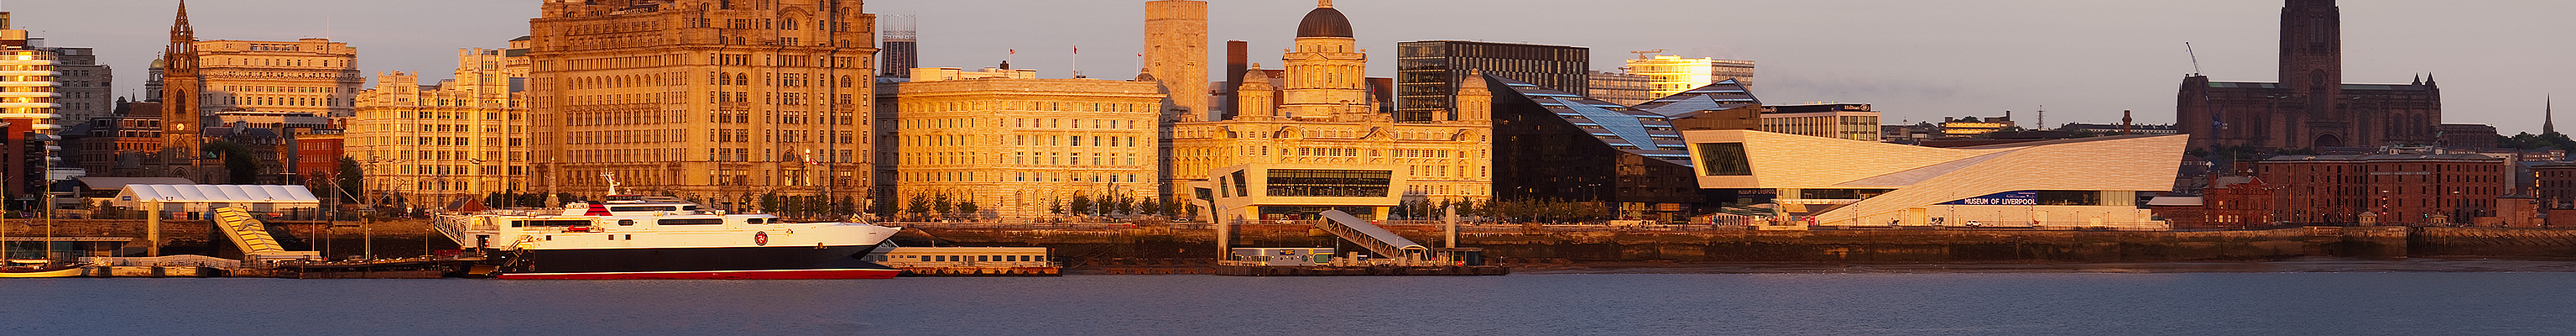 Liverpool. Fine Art Landscape Photography by Gary Waidson